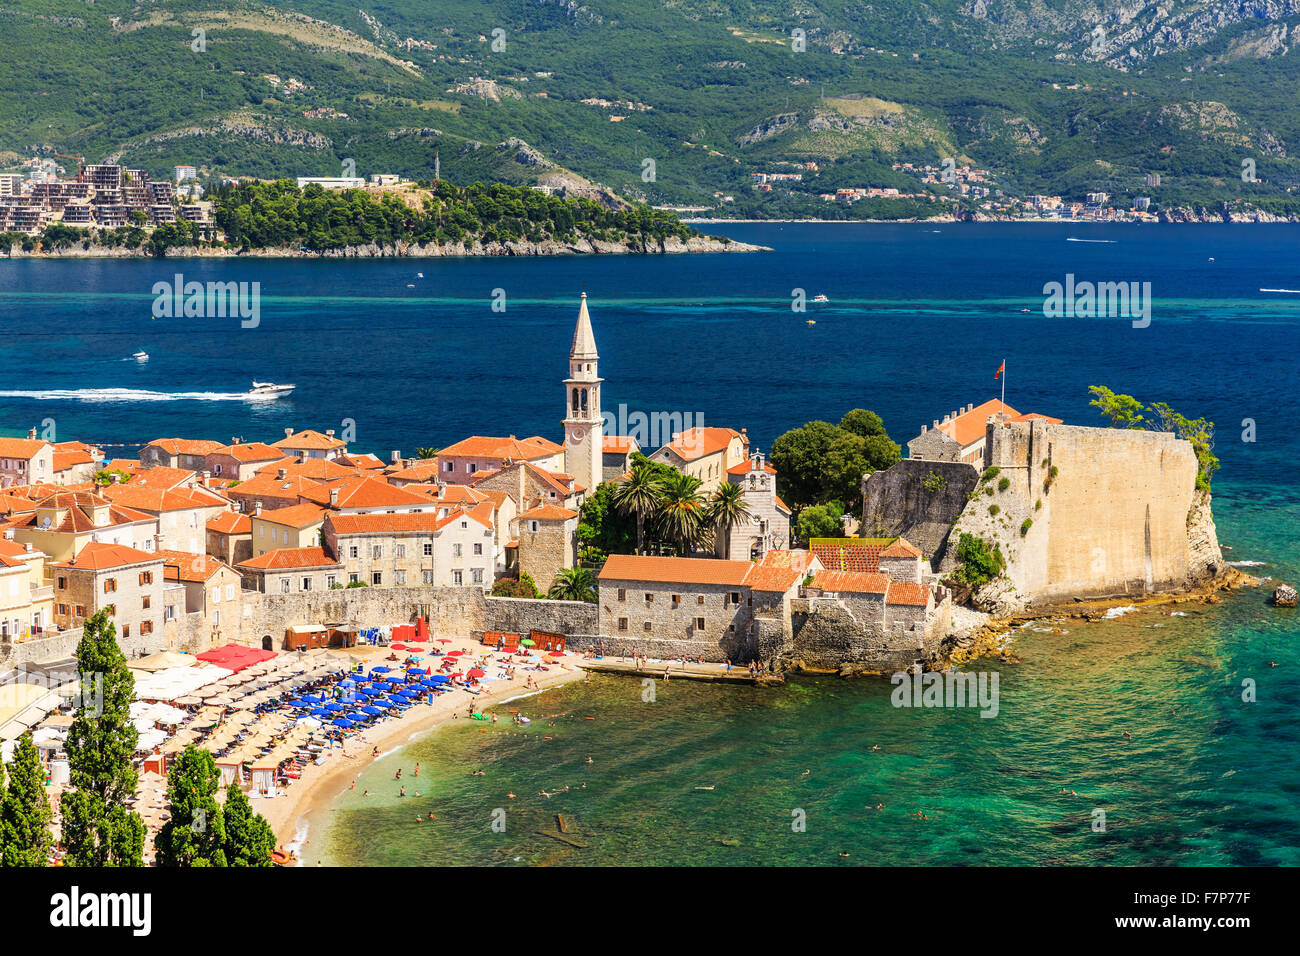 Budva, Montenegro. Panoramic view of the old town. - Stock Image